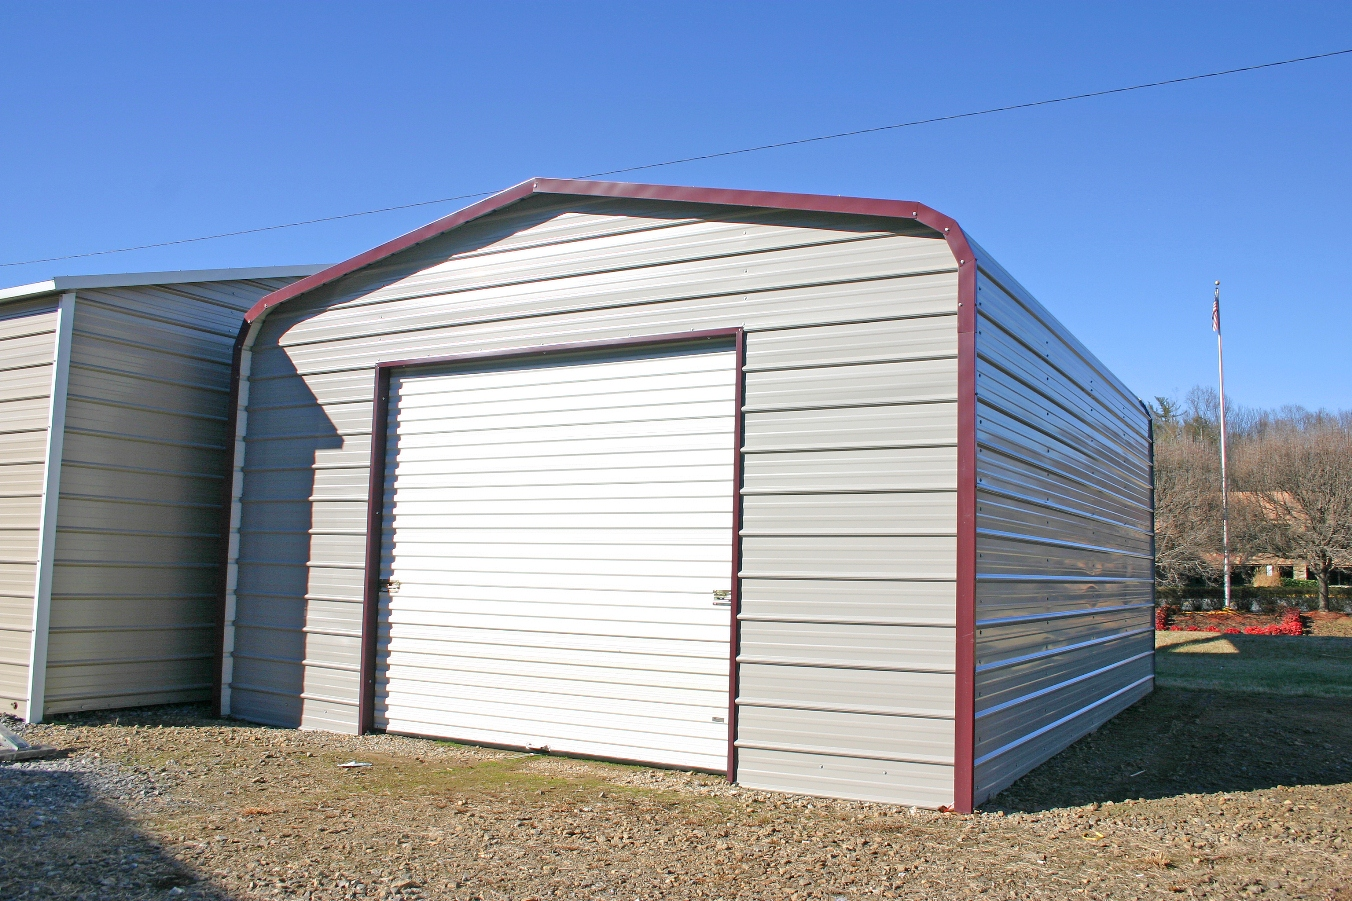 Standard metal garage with white roll up garage door and red trim.